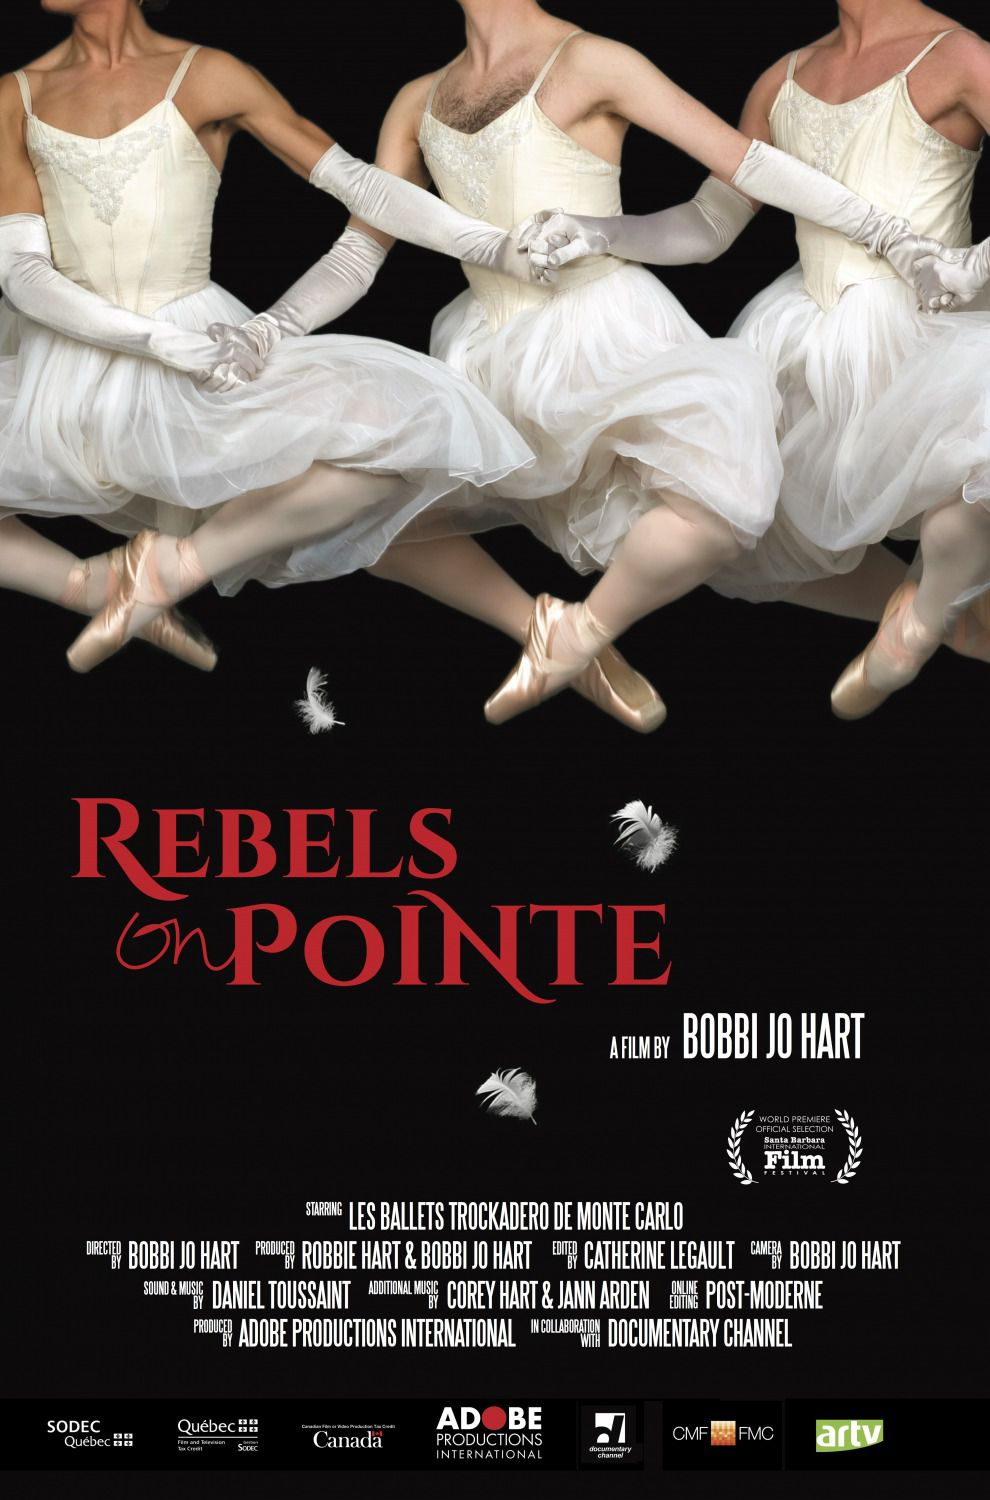 Rebels on Pointe - Ribelli sulle Punte by Bobbi Jo Hart - dance film poster